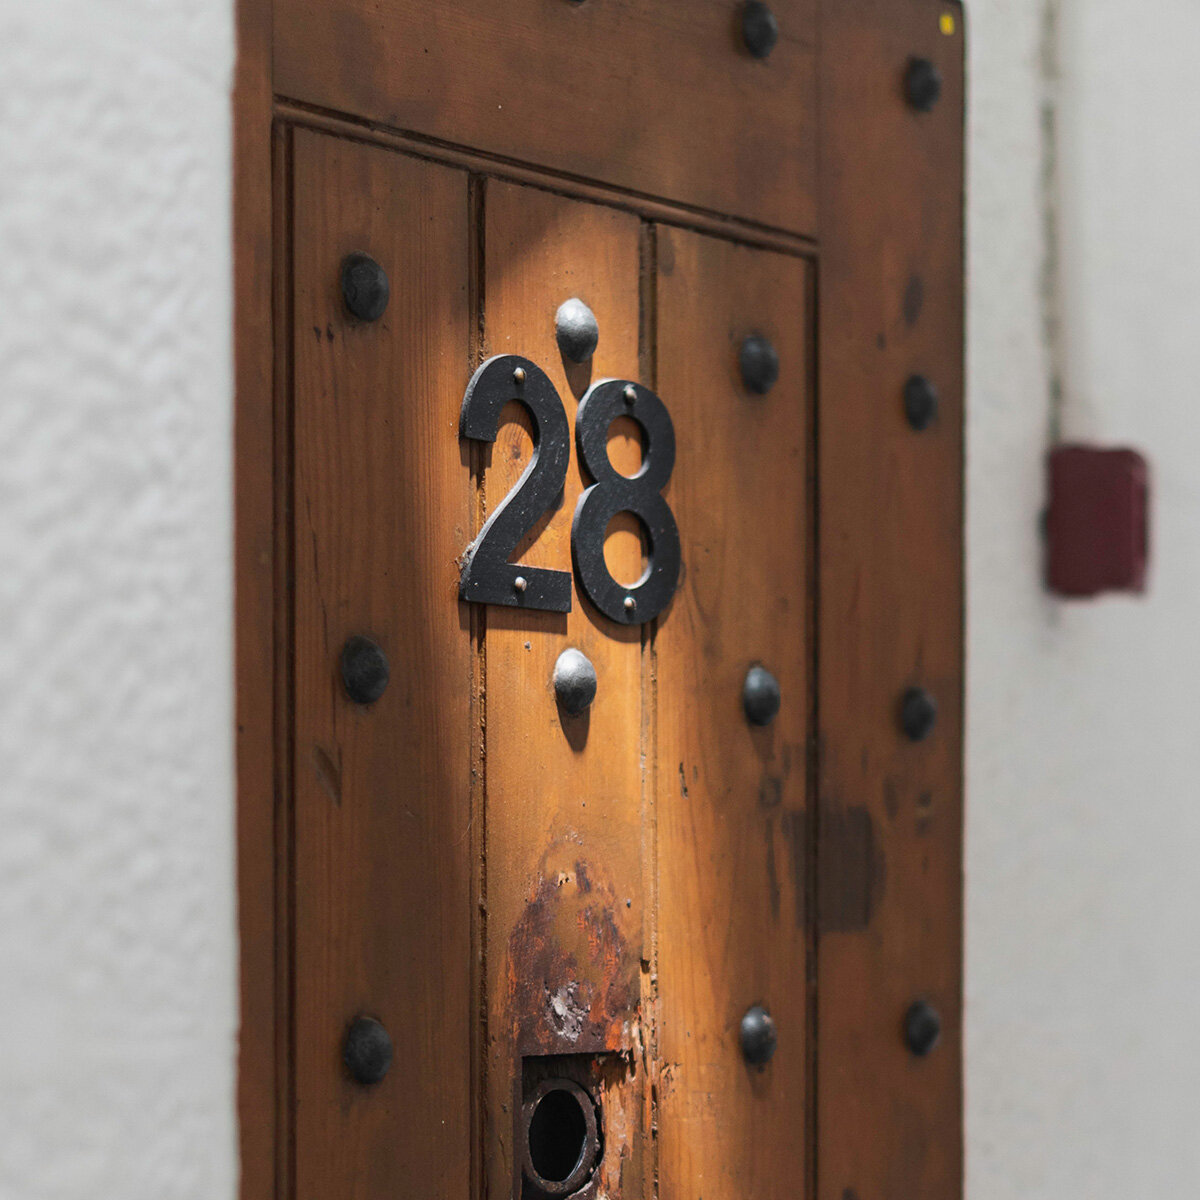 Your unique number - Your private cellar should be as individual as you are. Each cellar was once a prison cell with its own unique number which is still present today, giving you the chance to own a piece of history and a truly personalised space.